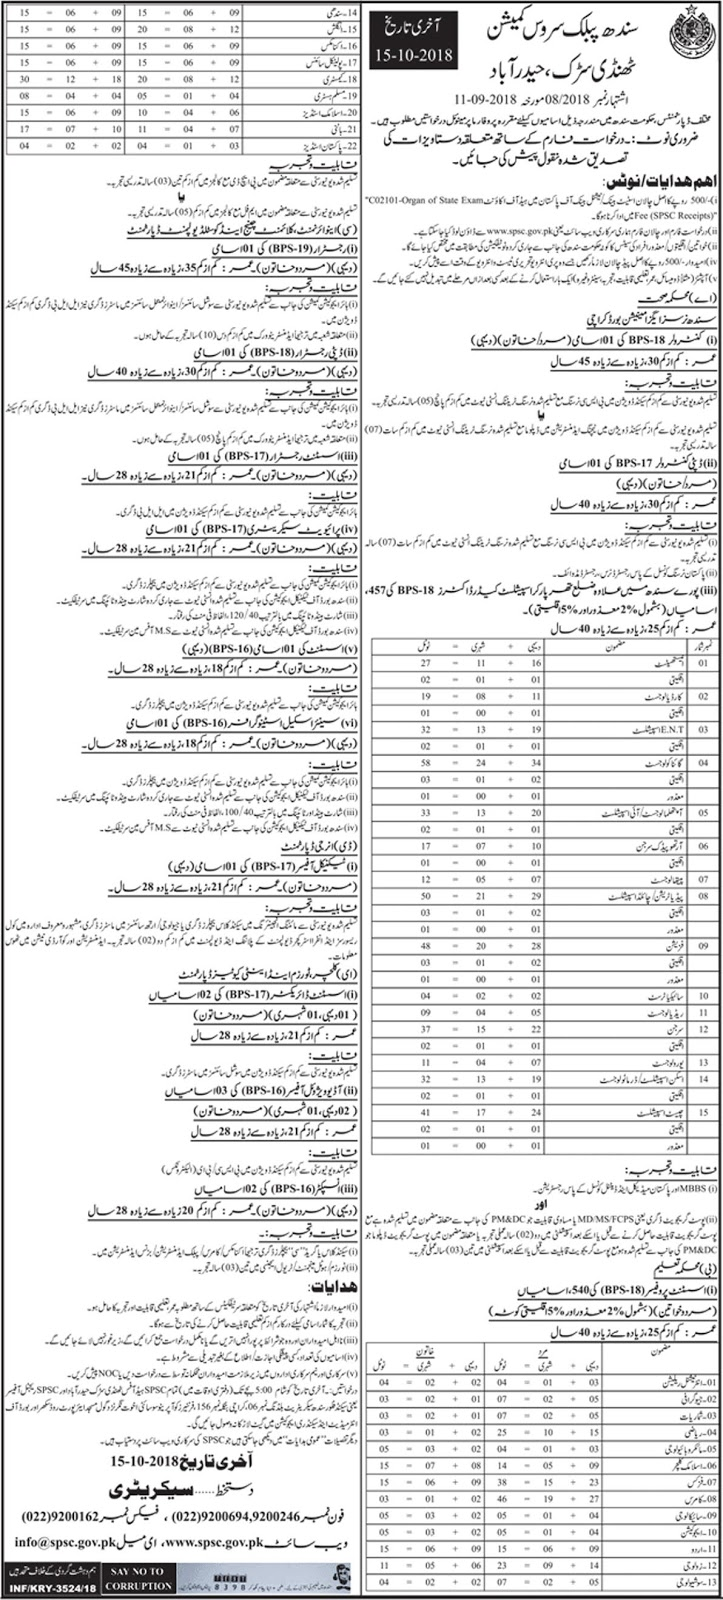 Latest Vacancies Announced in Sindh Public Service Commission SPSC 16 September 2018